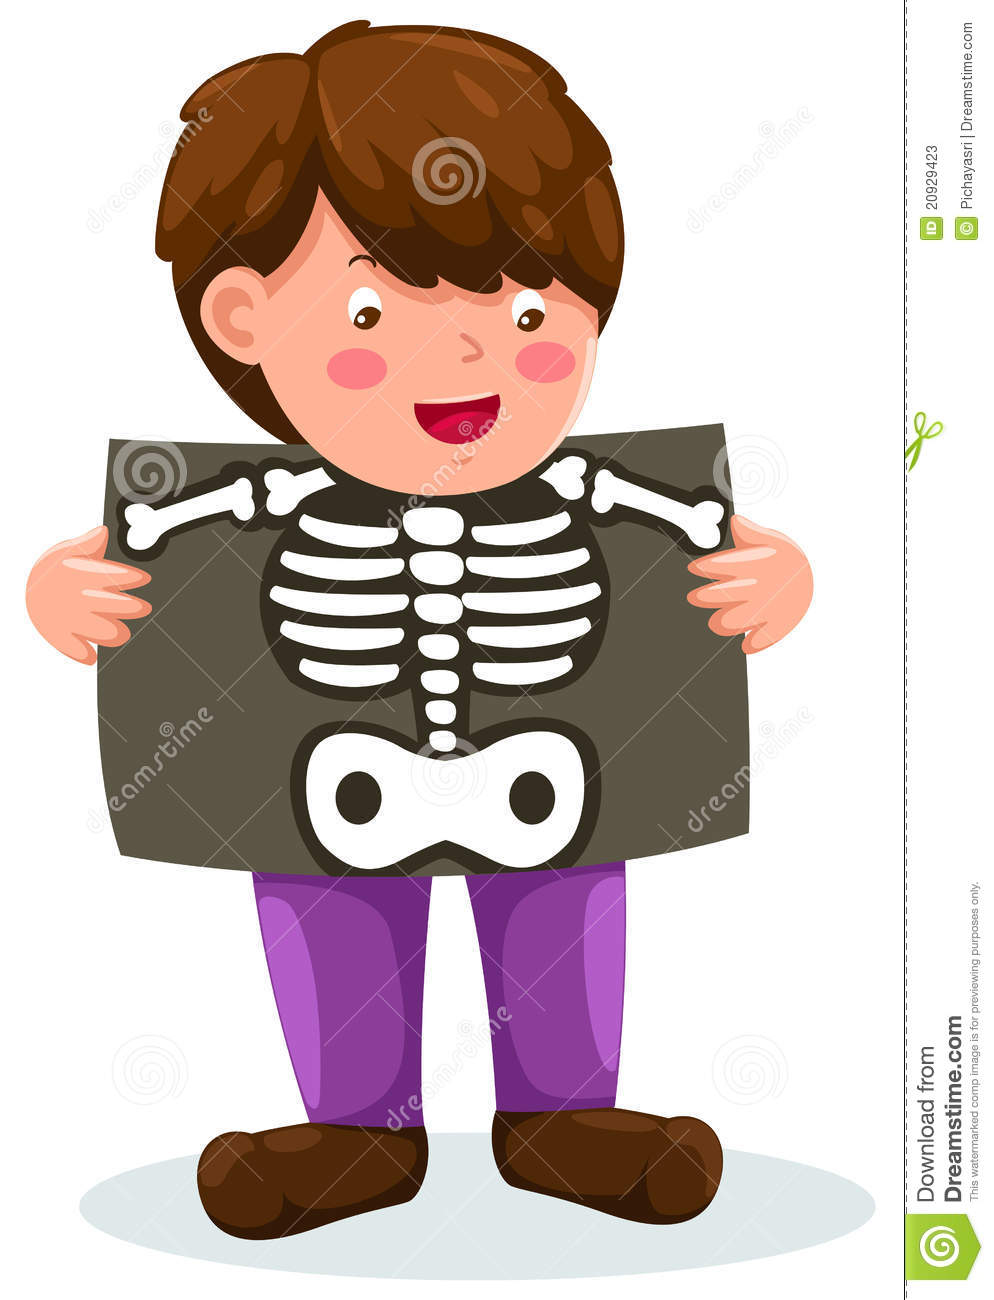 Illustration of isolated boy holding x-ray on white.